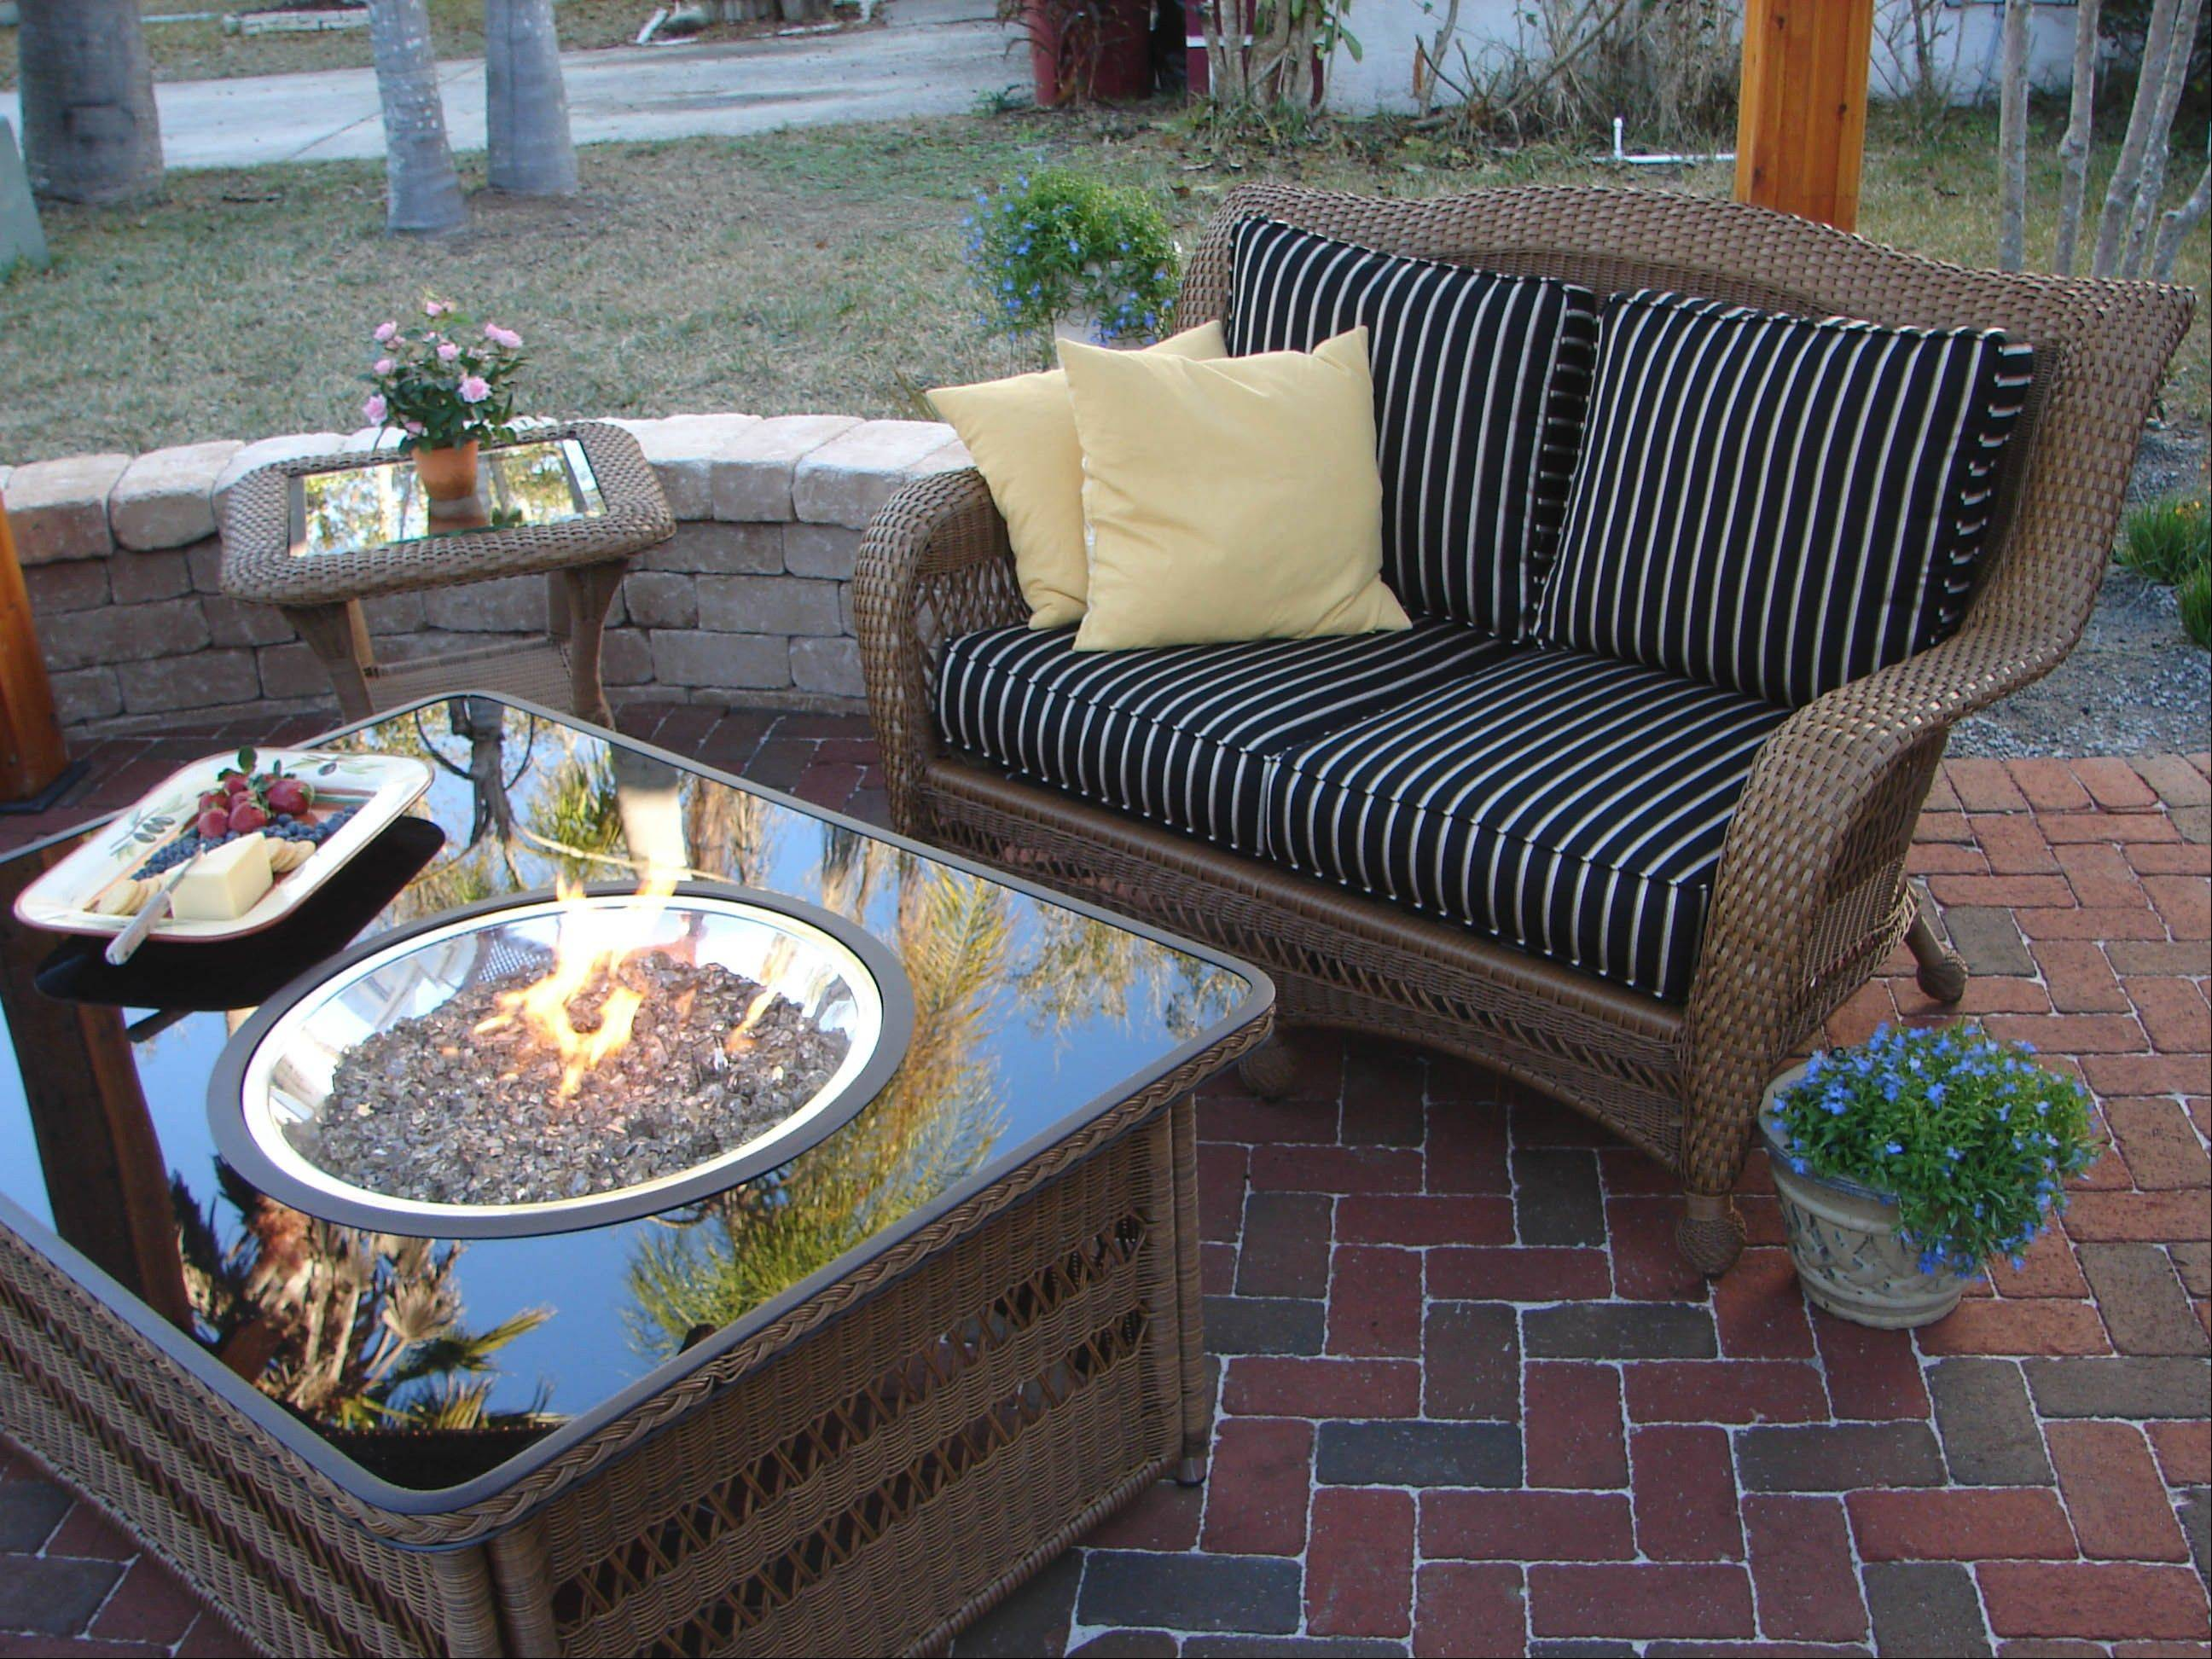 Fire pits have become upscale. This fire table is made to match the patio furniture with such features as automatic ignition and a propane tank hidden in a pullout drawer.